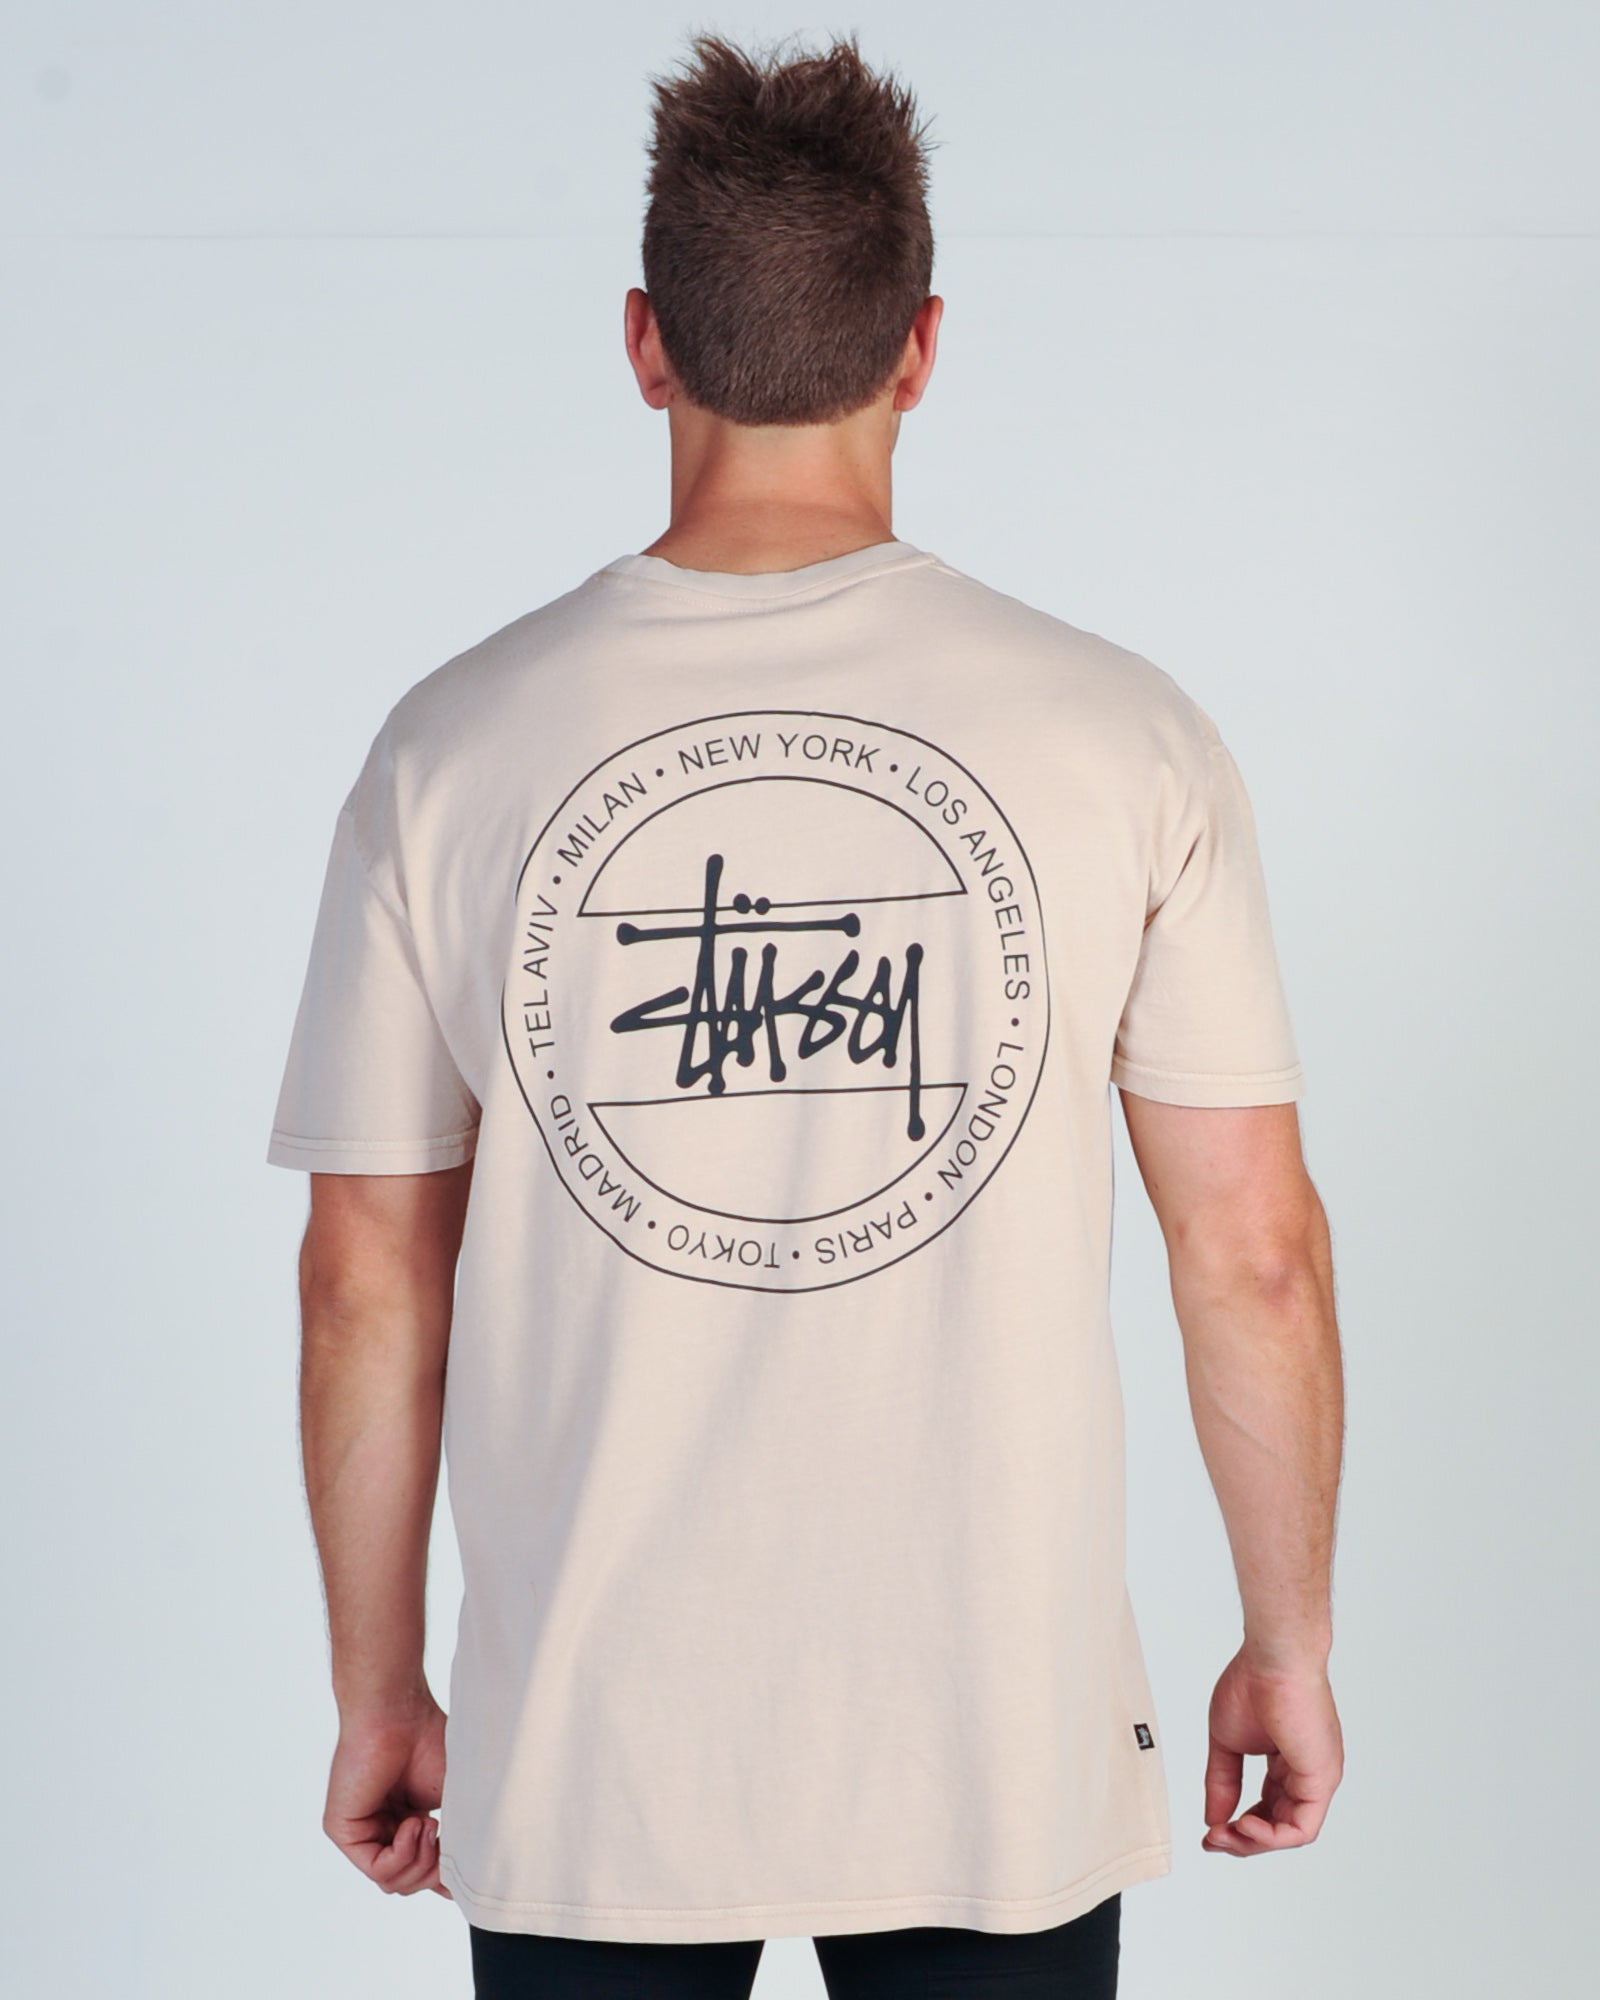 STUSSY GRAFFITI TOUR S/S TEE - PIGMENT DUSTY ROSE